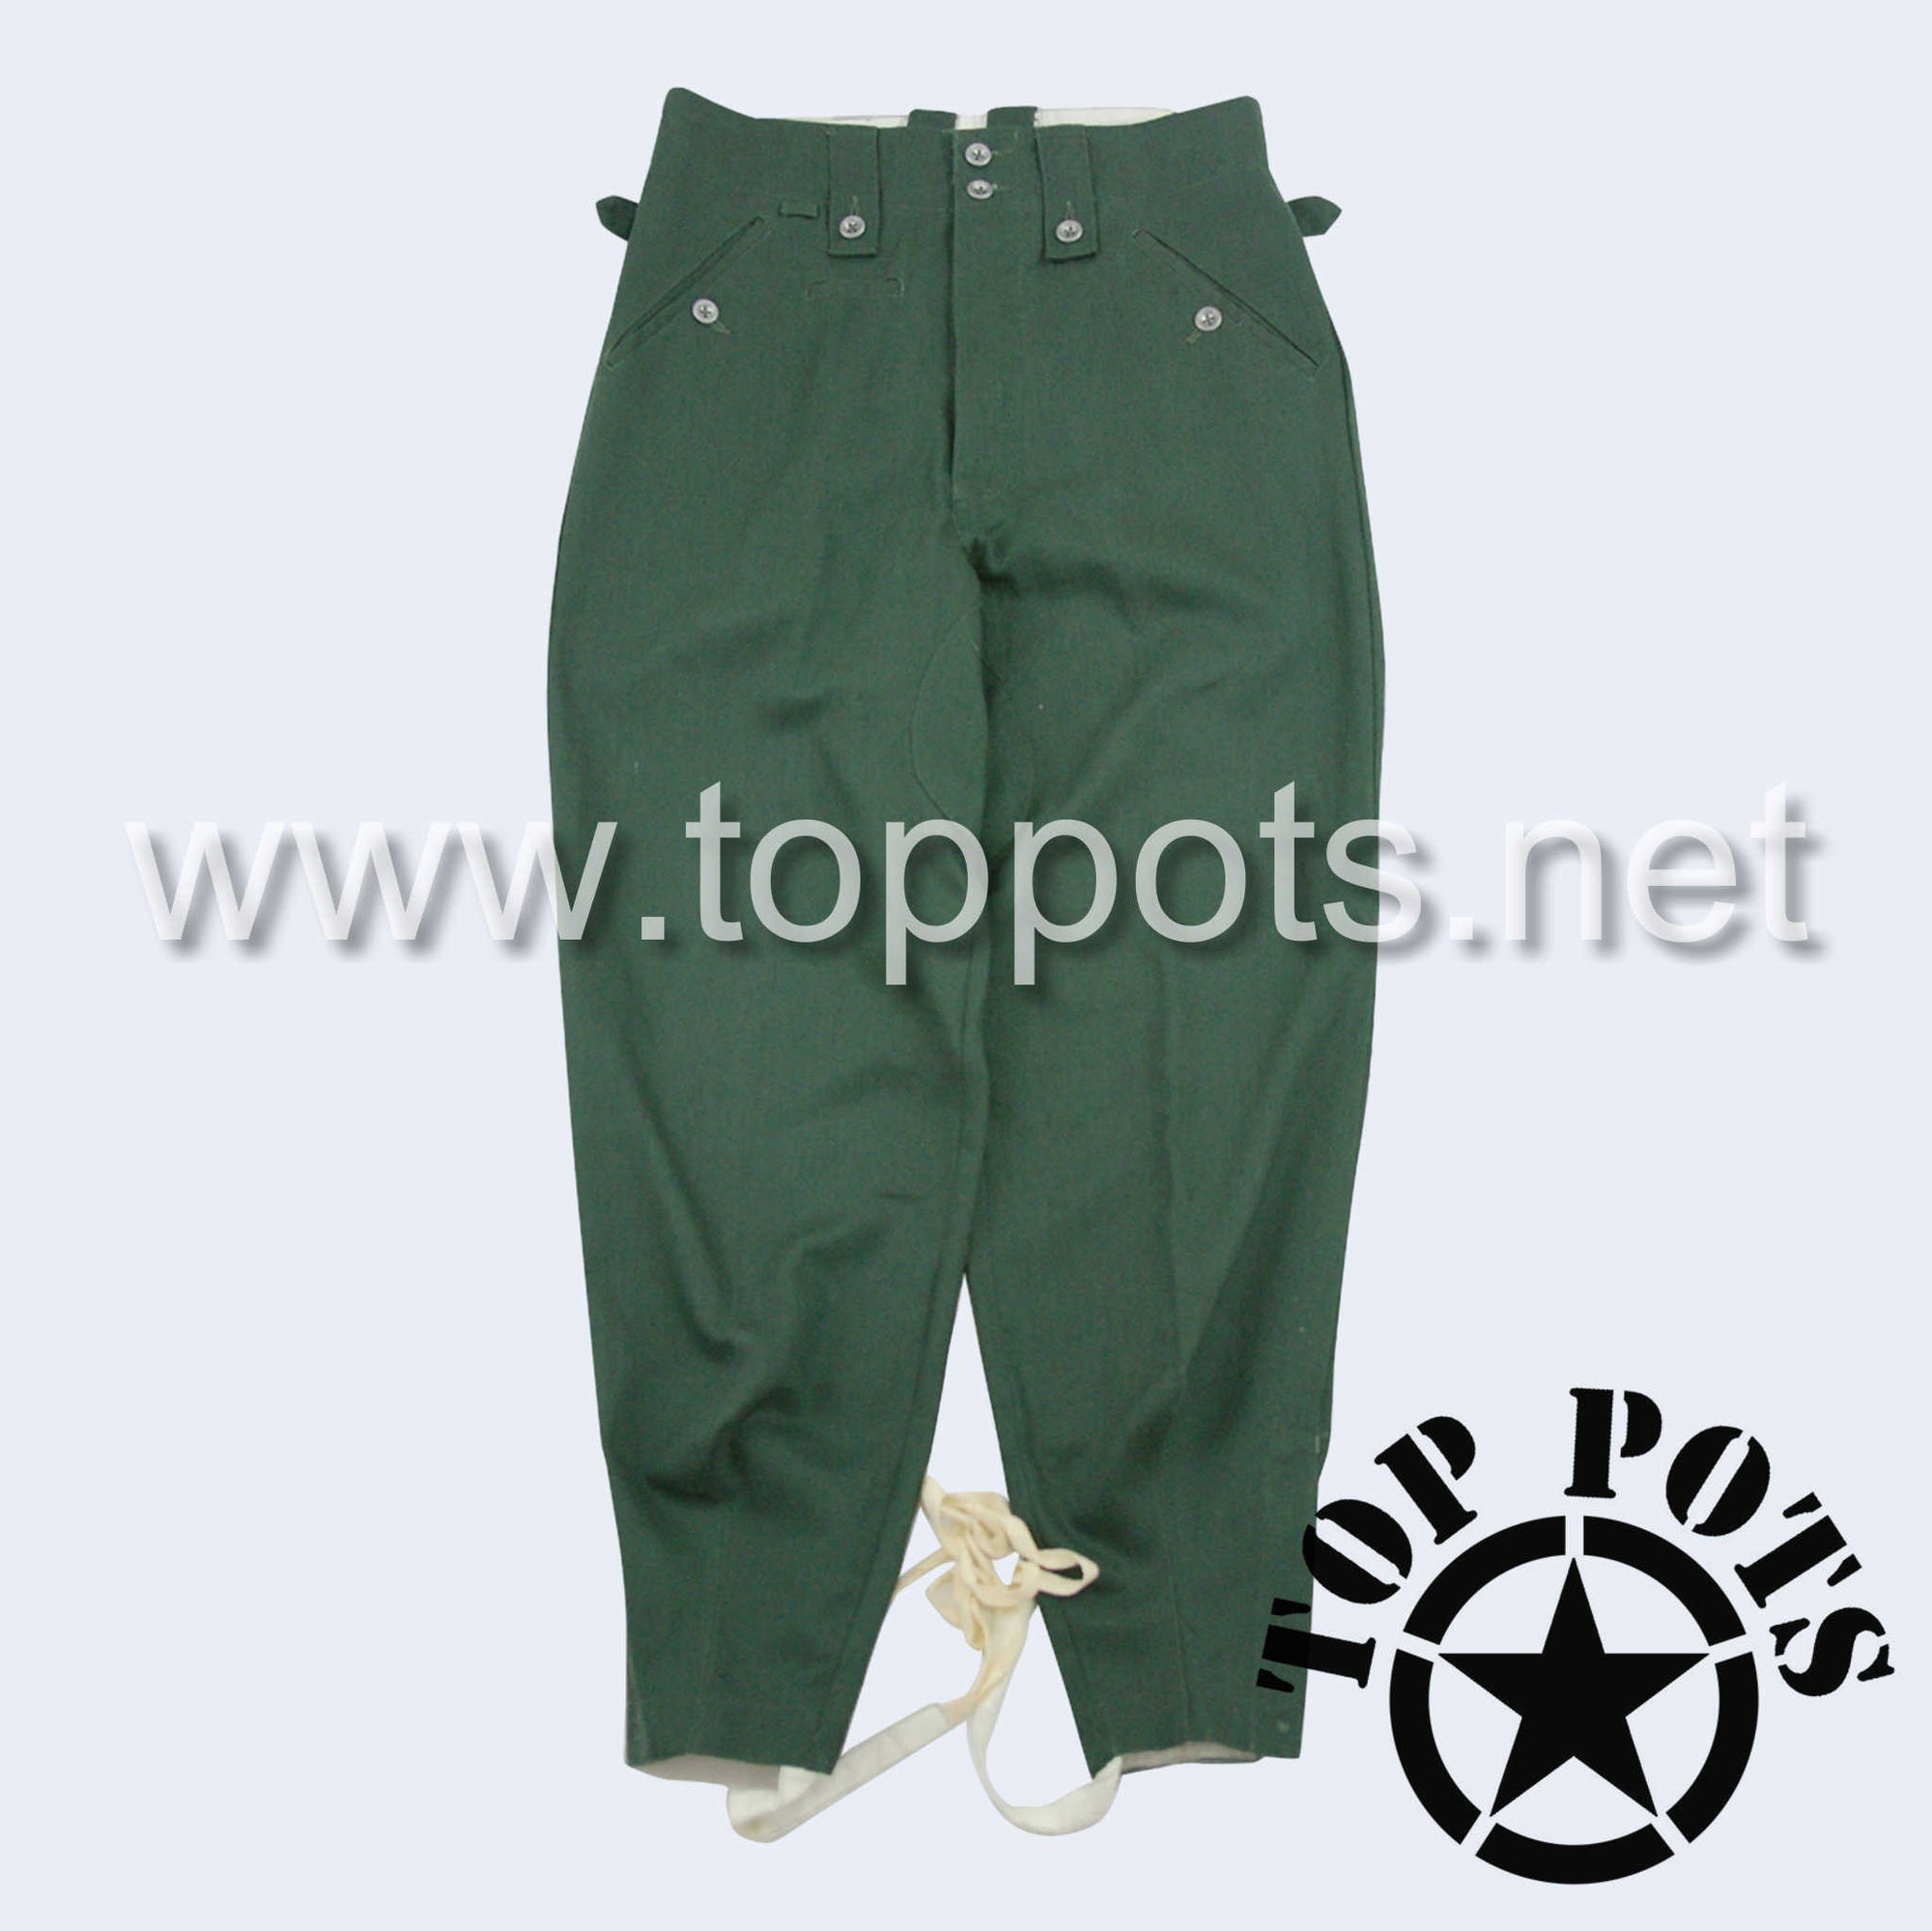 WWII German Army M1943 Waffen SS Enlisted HBT Reed Green Summer Uniform Pants - Field Trousers (Keilhosen)